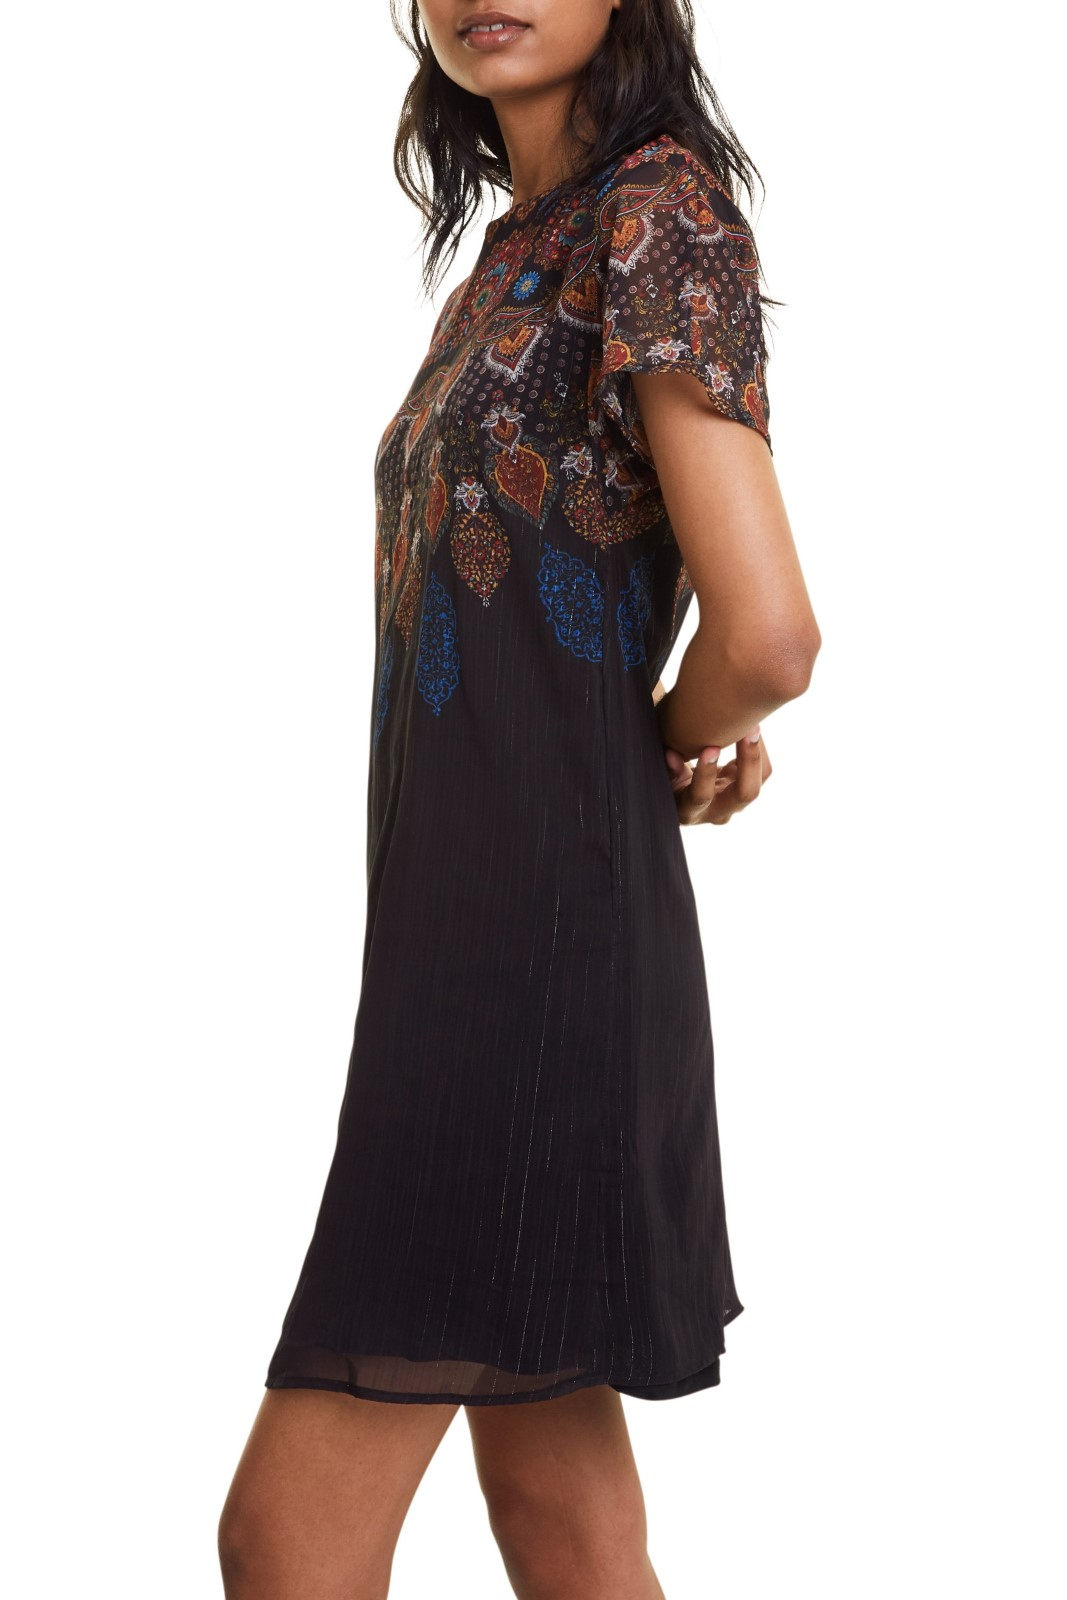 Desigual black dress Vest Mexican